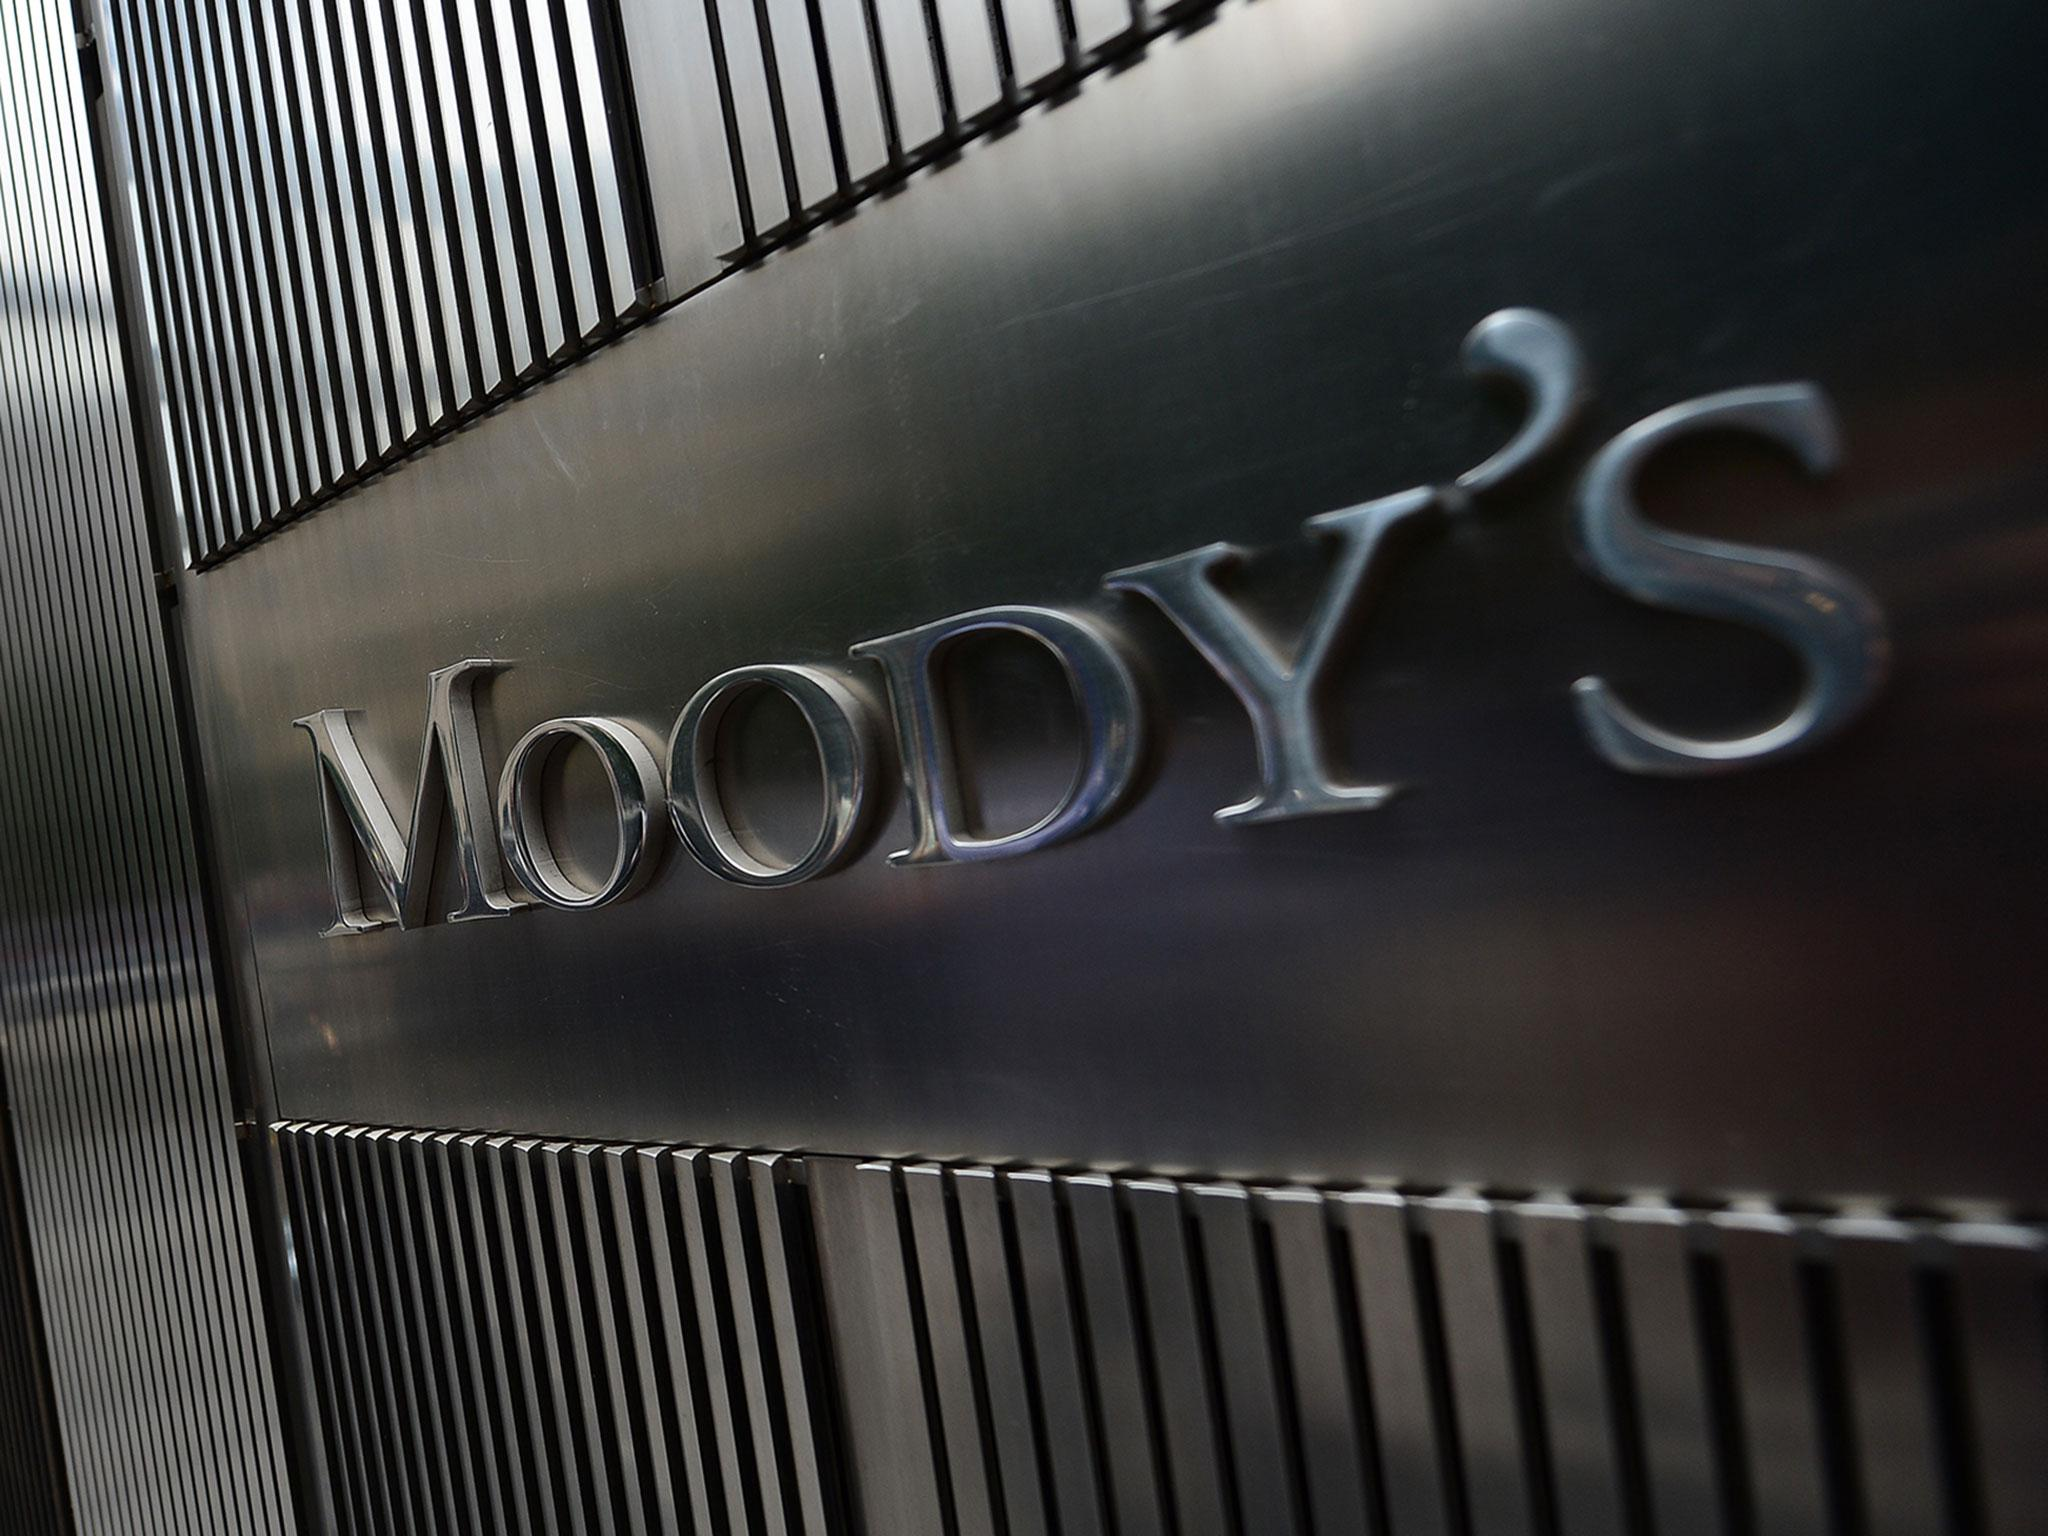 Moody's on Cyprus: The deleveraging will continue, the small economy and the big debt pose challenges